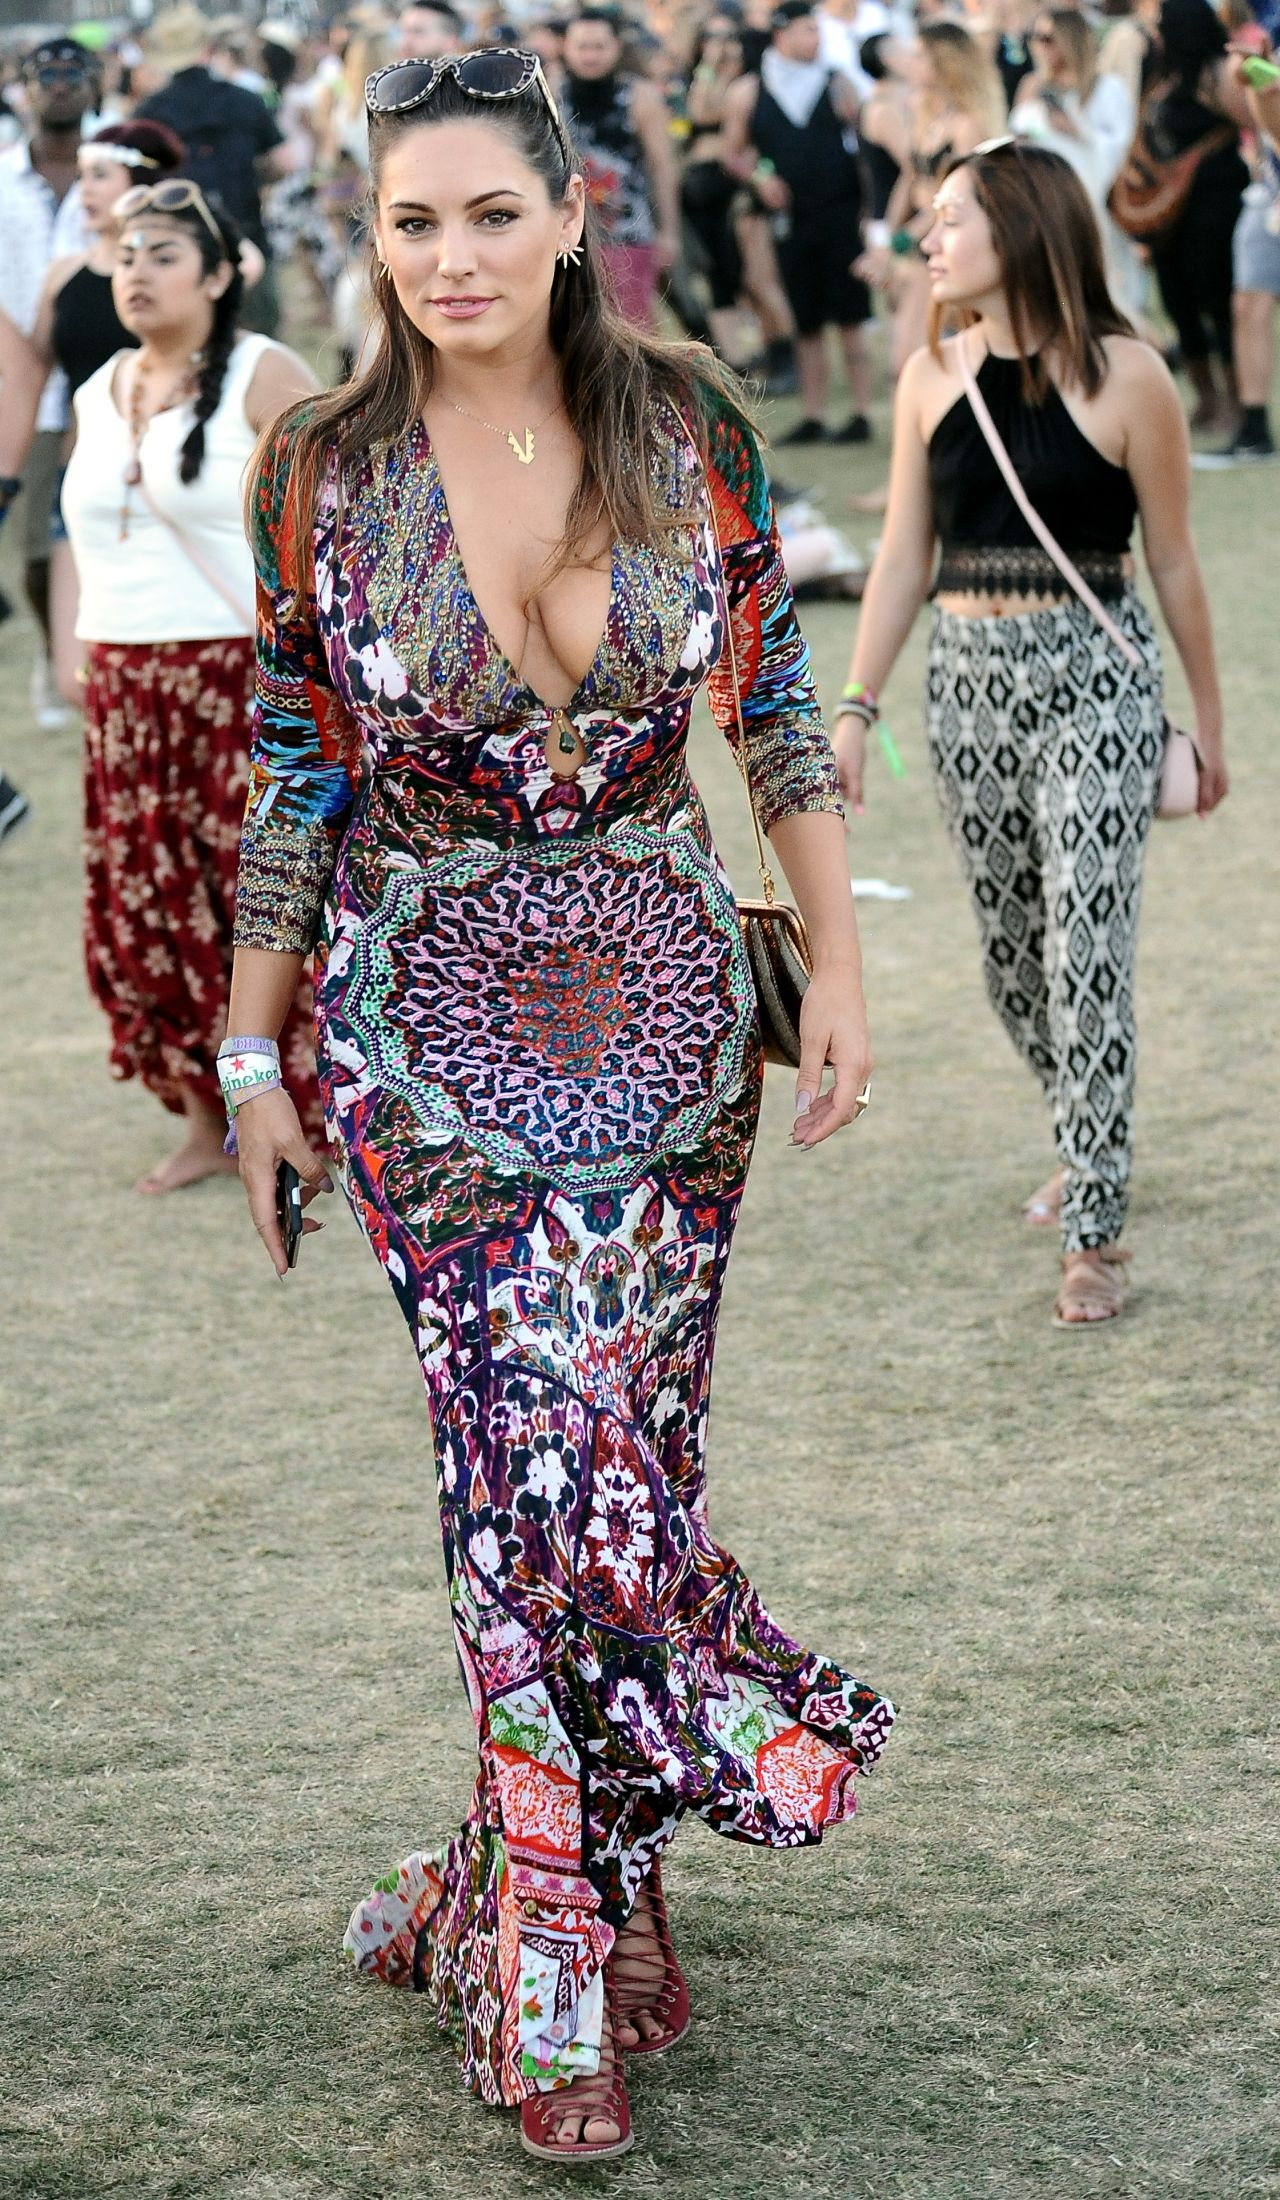 Kelly Brook In Patterned Dress Coachella Music Amp Arts